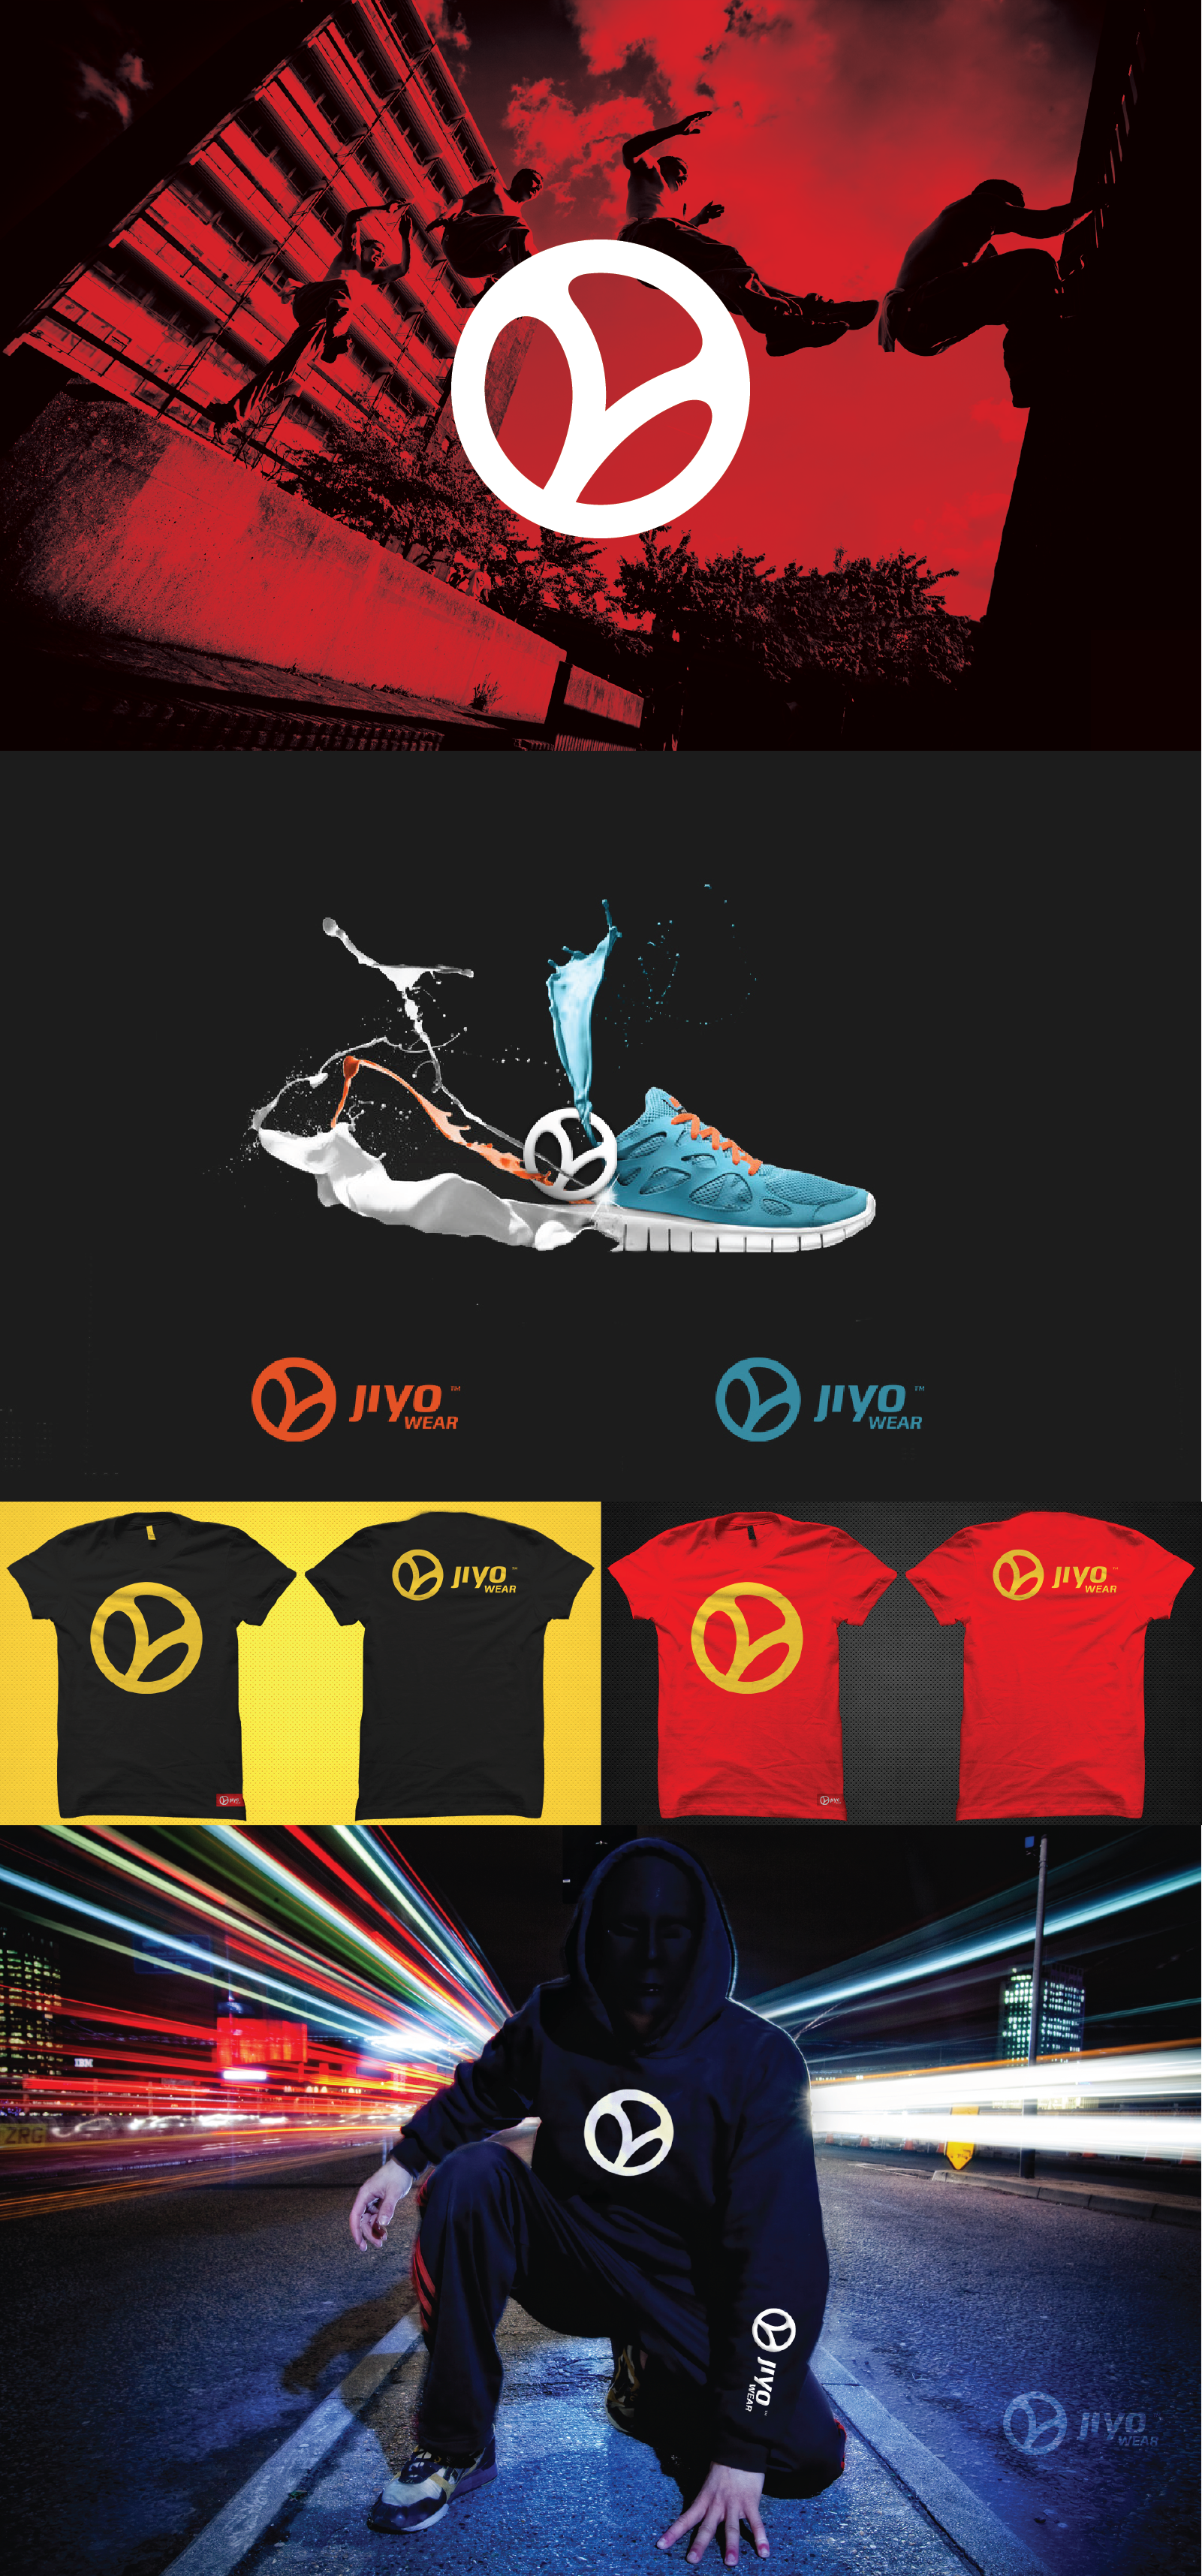 Create the Bookmark / Brand Logo for one of the best parkour/freerunning teams worldwide, Team JiYo